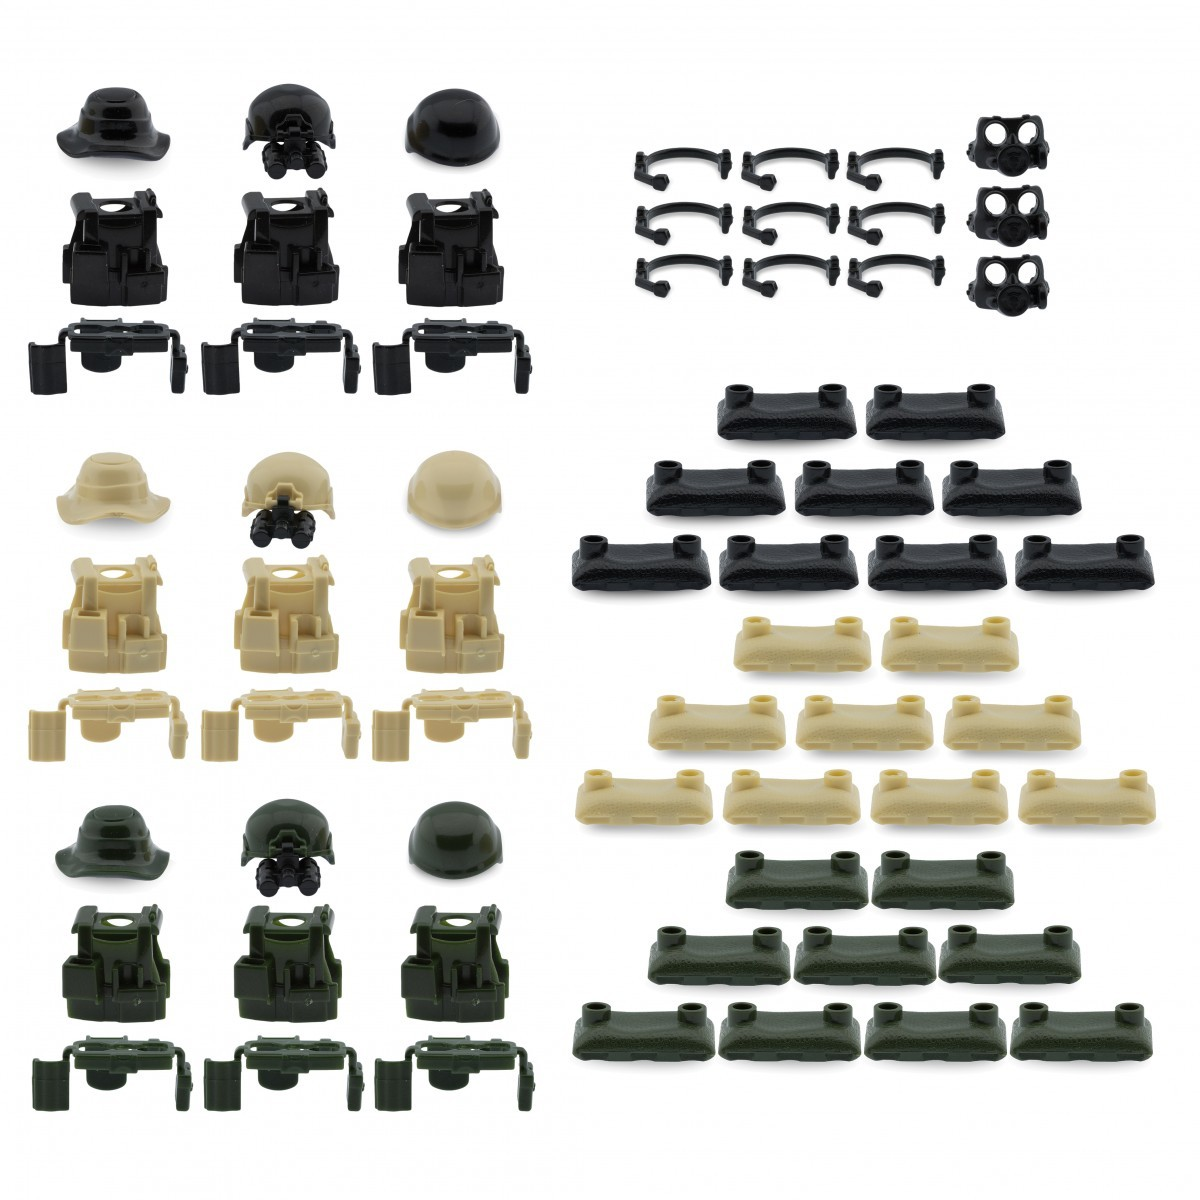 Stom military accessories armor sandbags compatible for lego brickarms minifigures minifigs pack